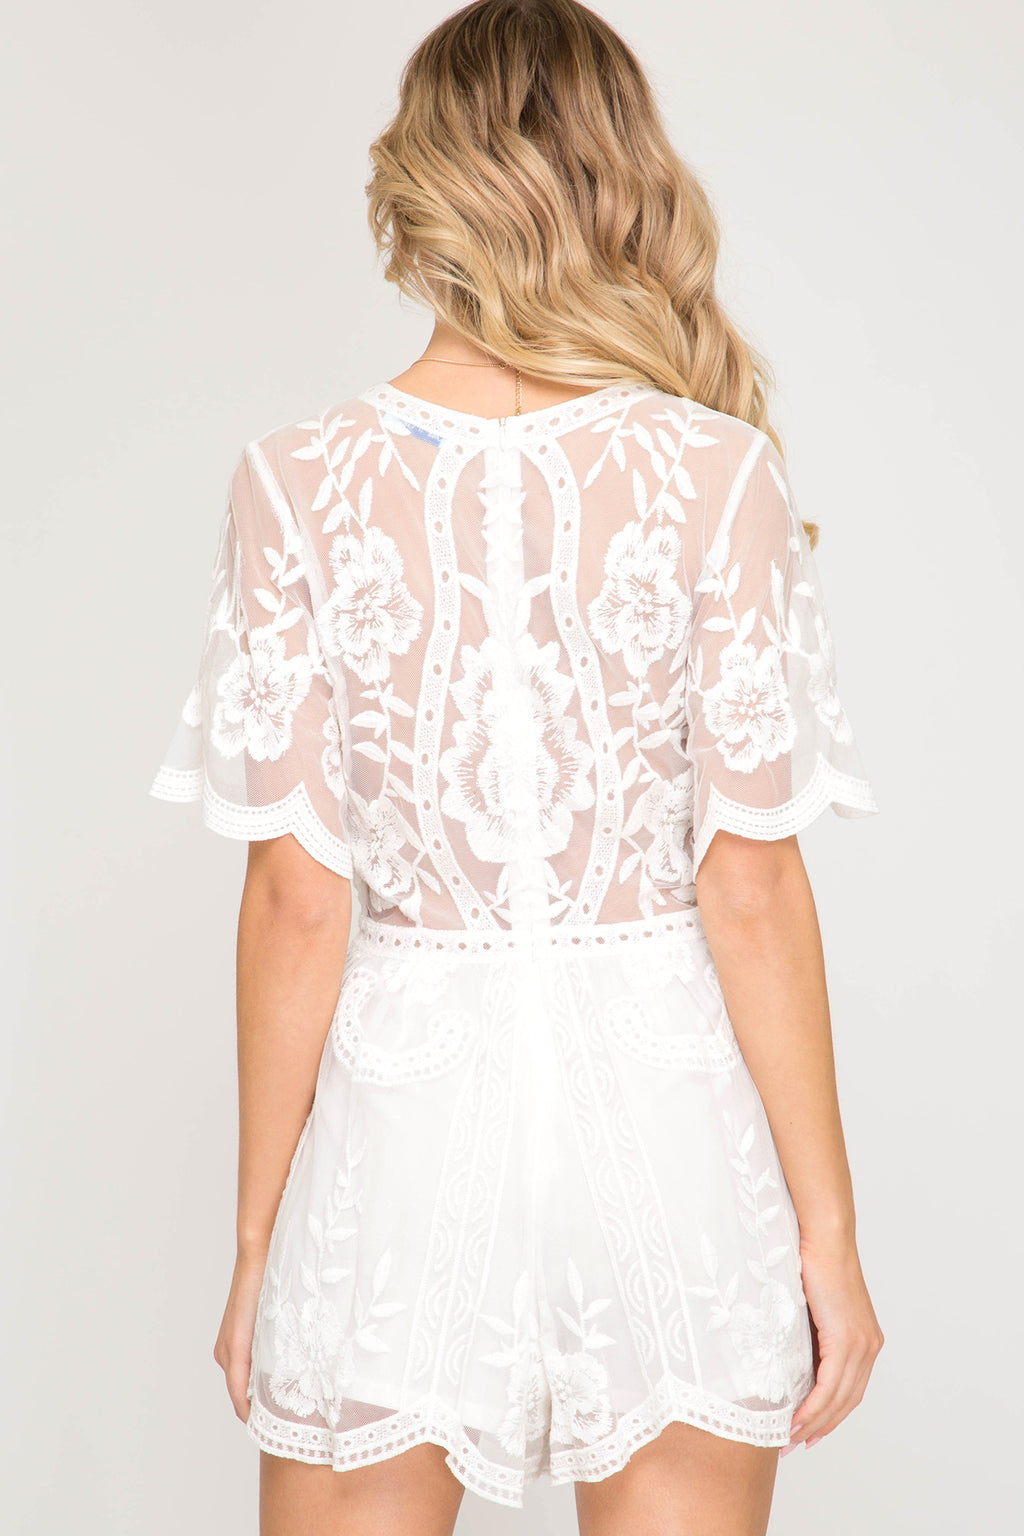 Crochet Lace Romper - Off White